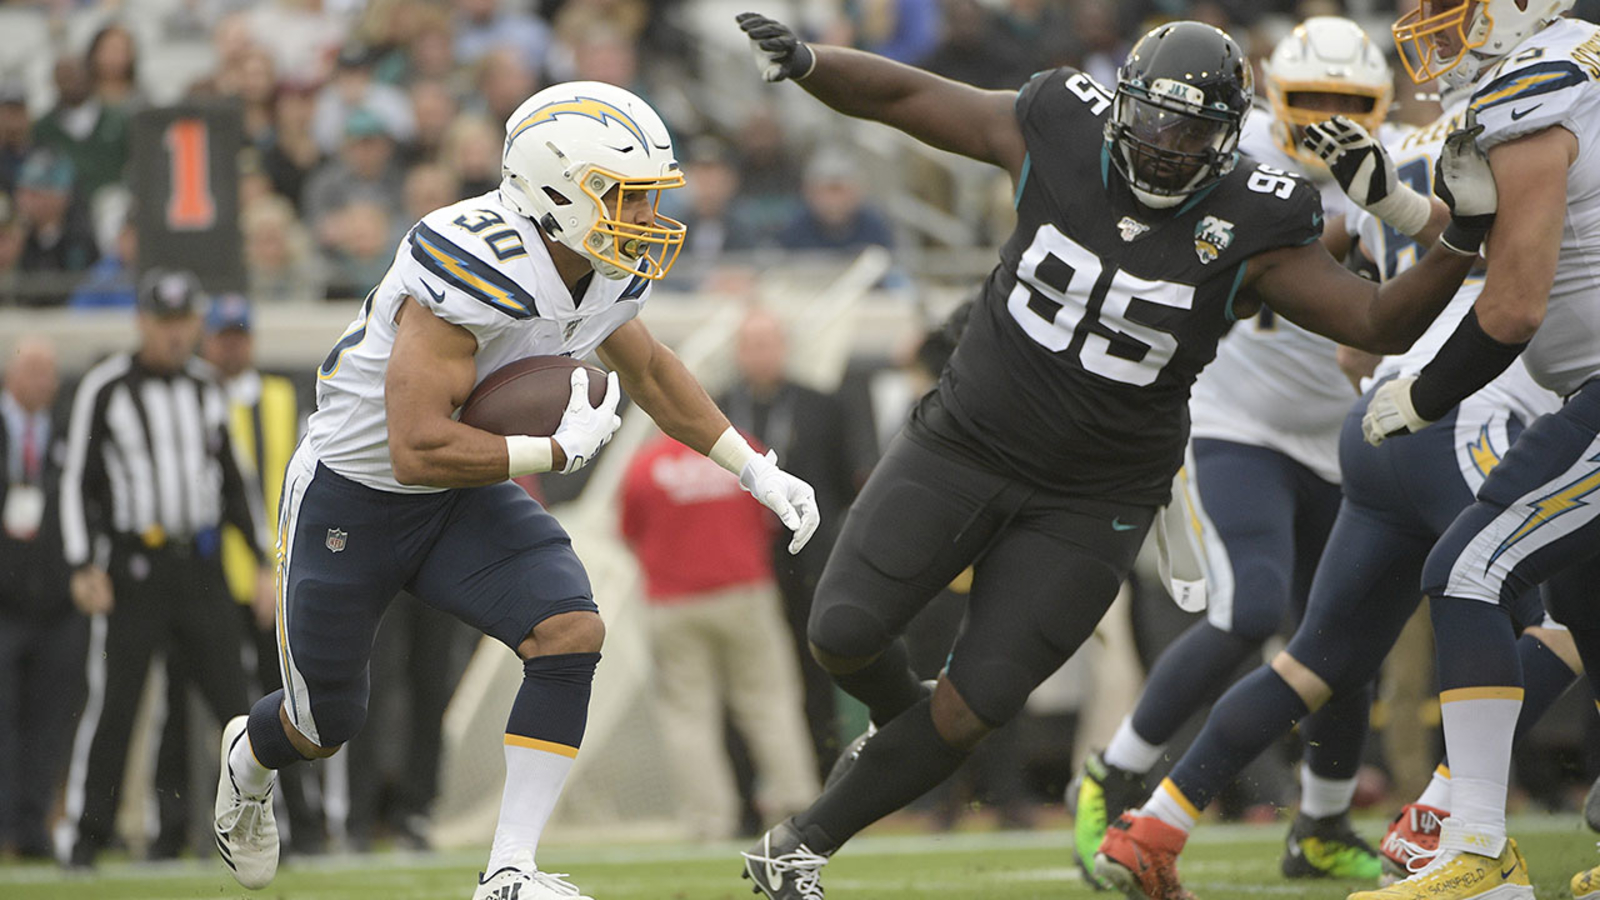 Chargers take down Jaguars 45-10